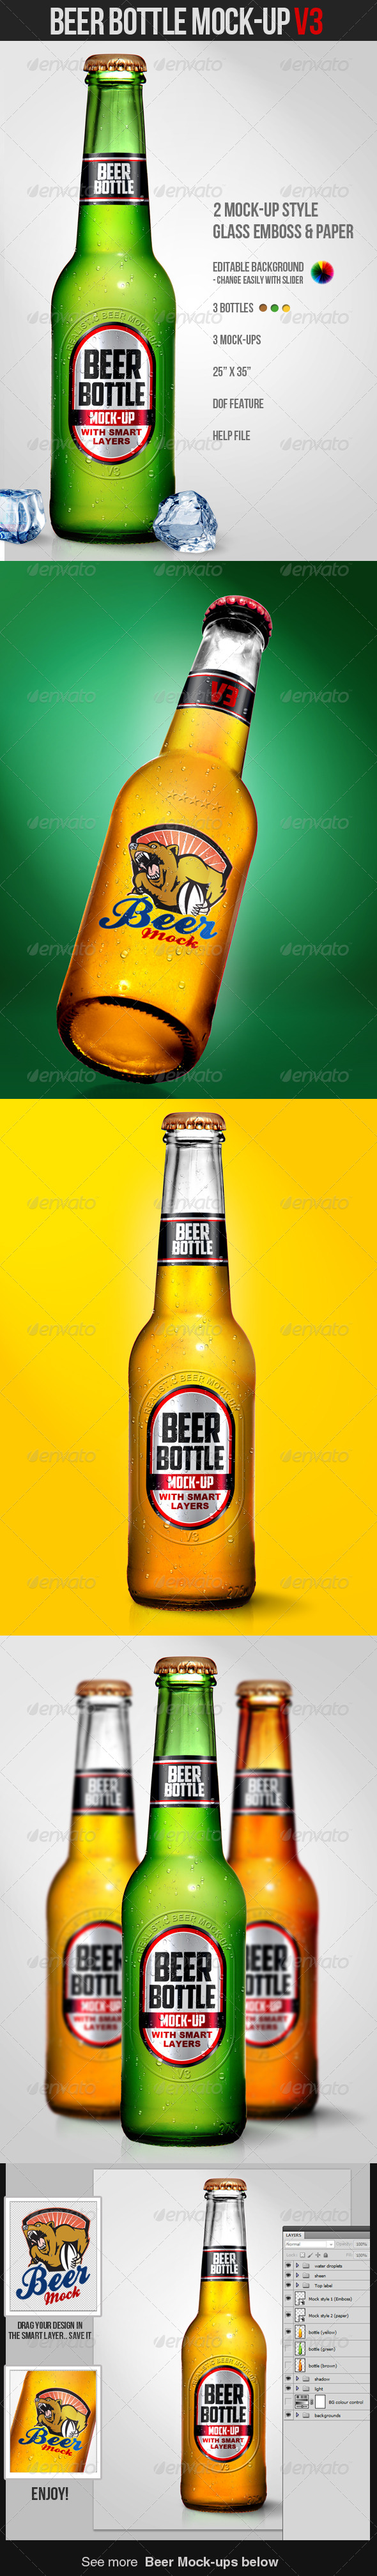 Beer Bottle Mockup V3